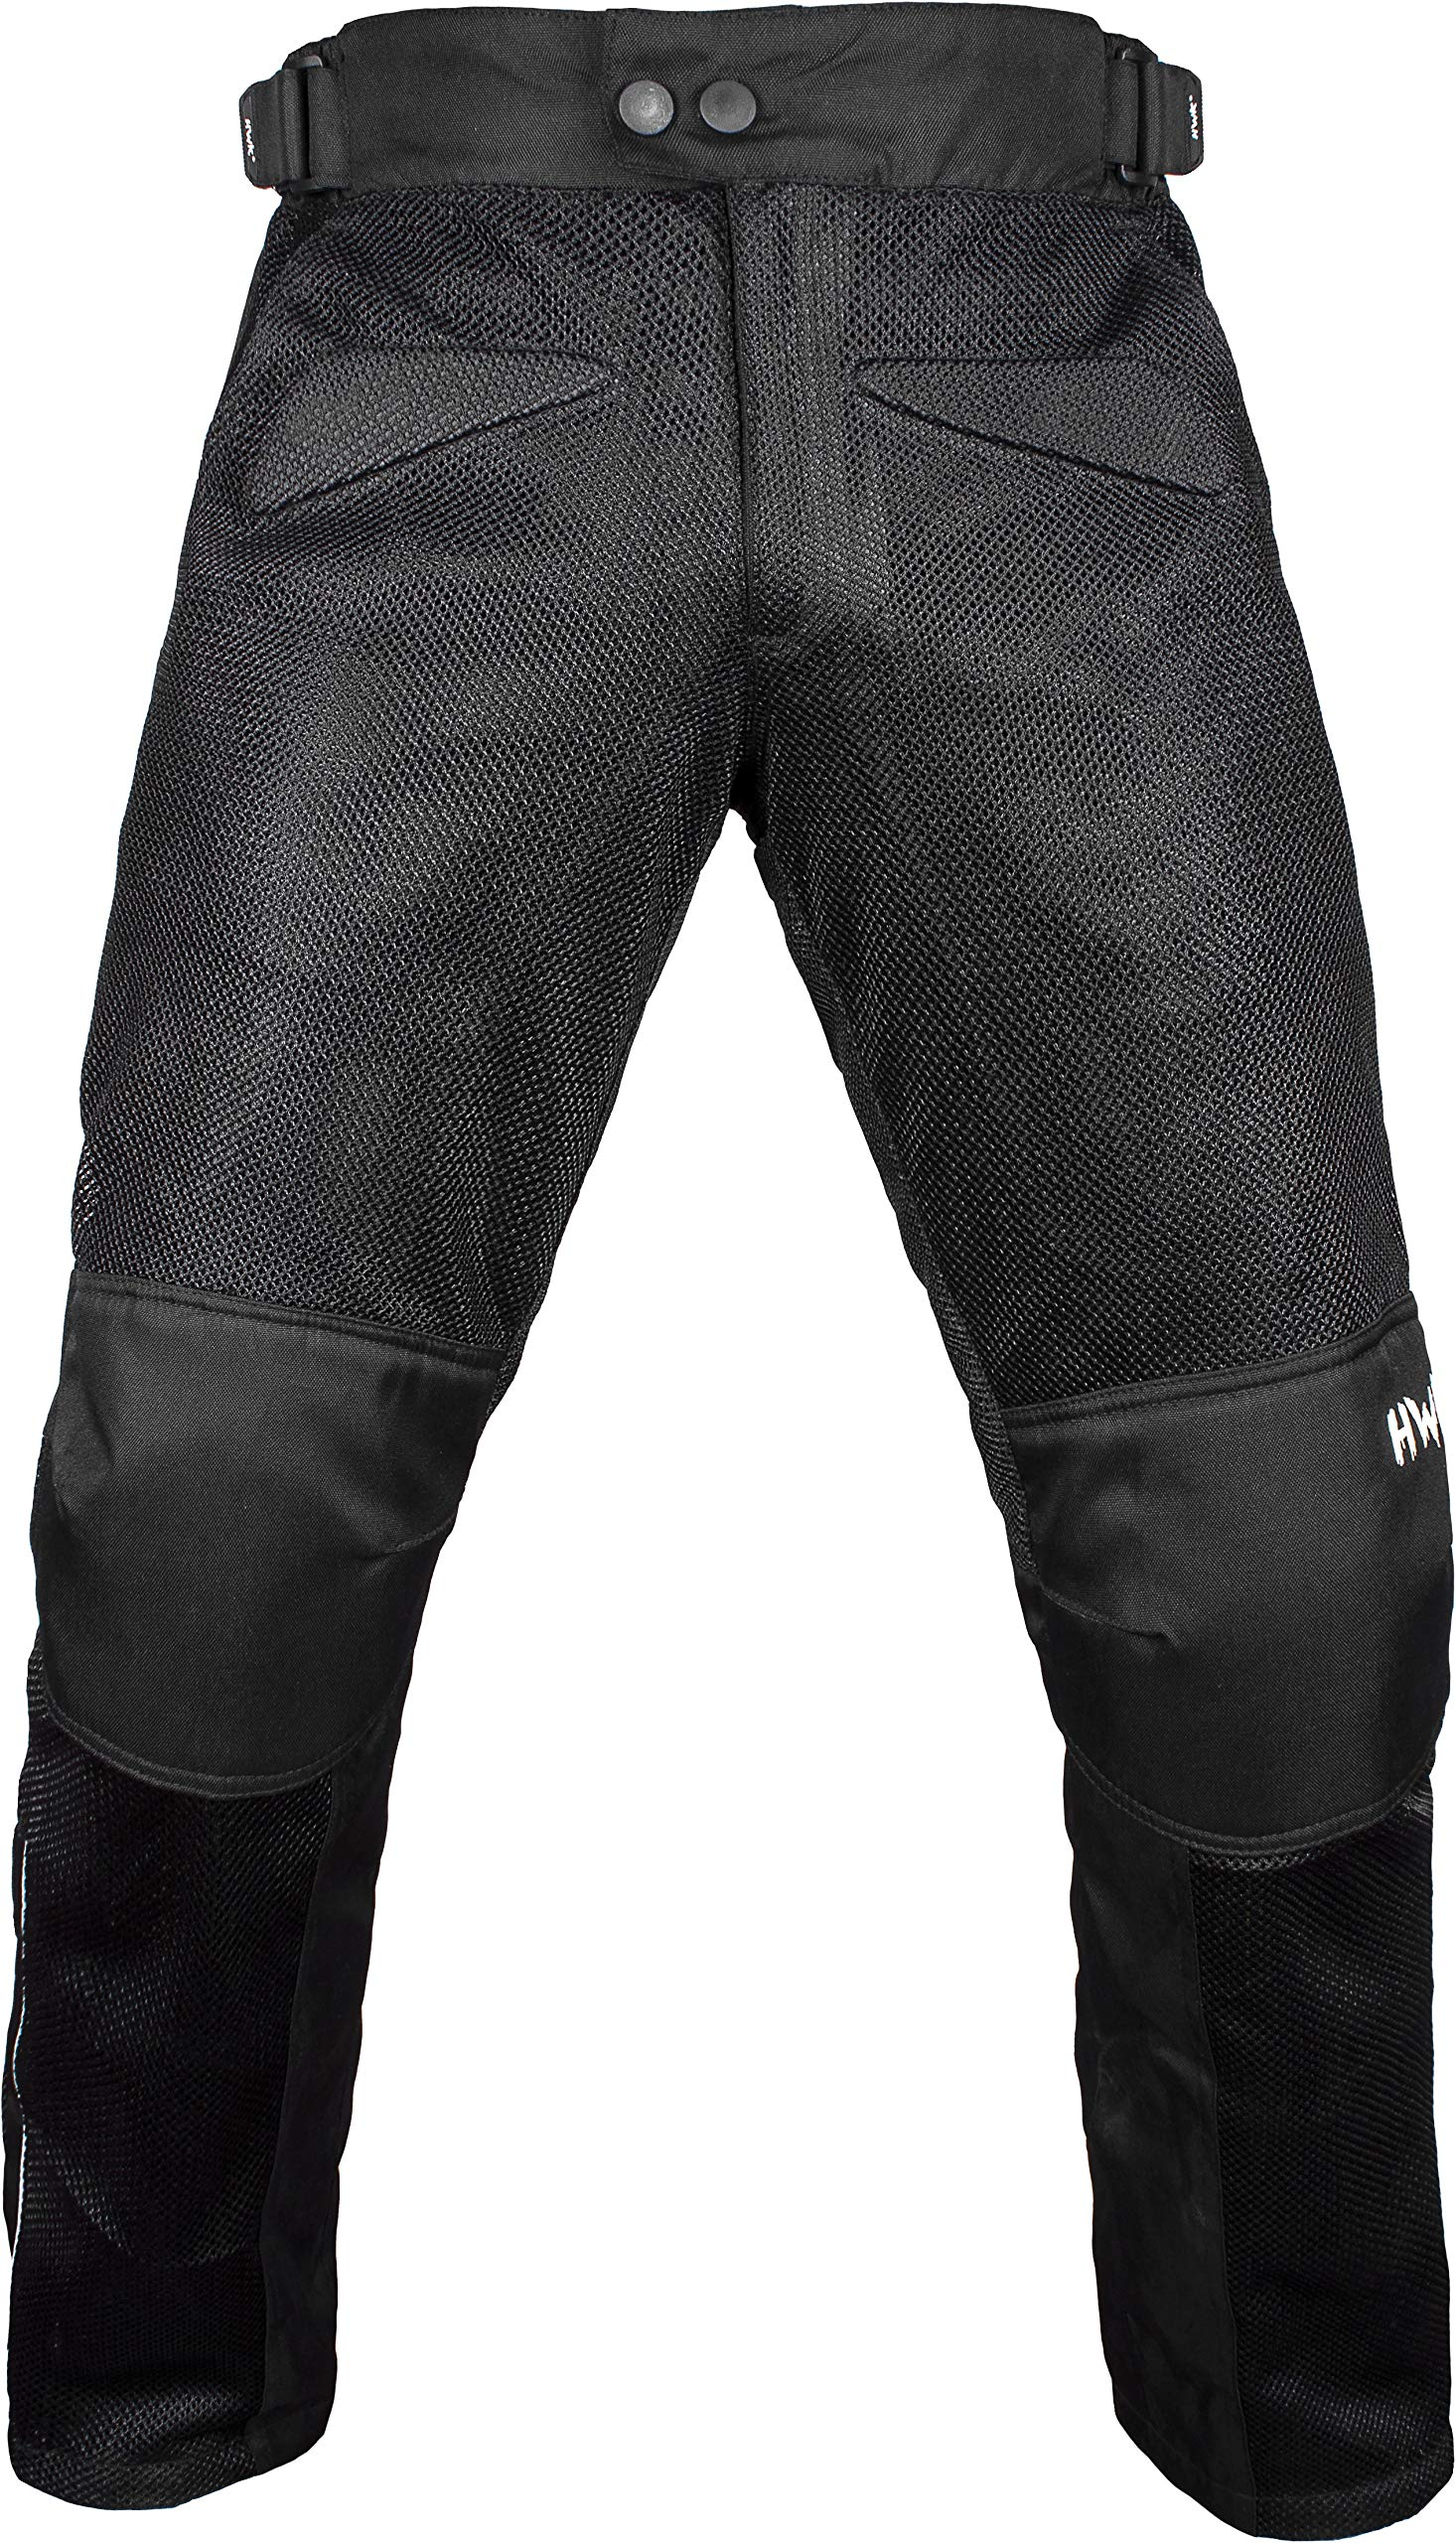 HWK Mesh Motorcycle Air Pants Riding CE ARMORED Motorbike Overpants!!! (Waist36''-38'' Inseam30'')